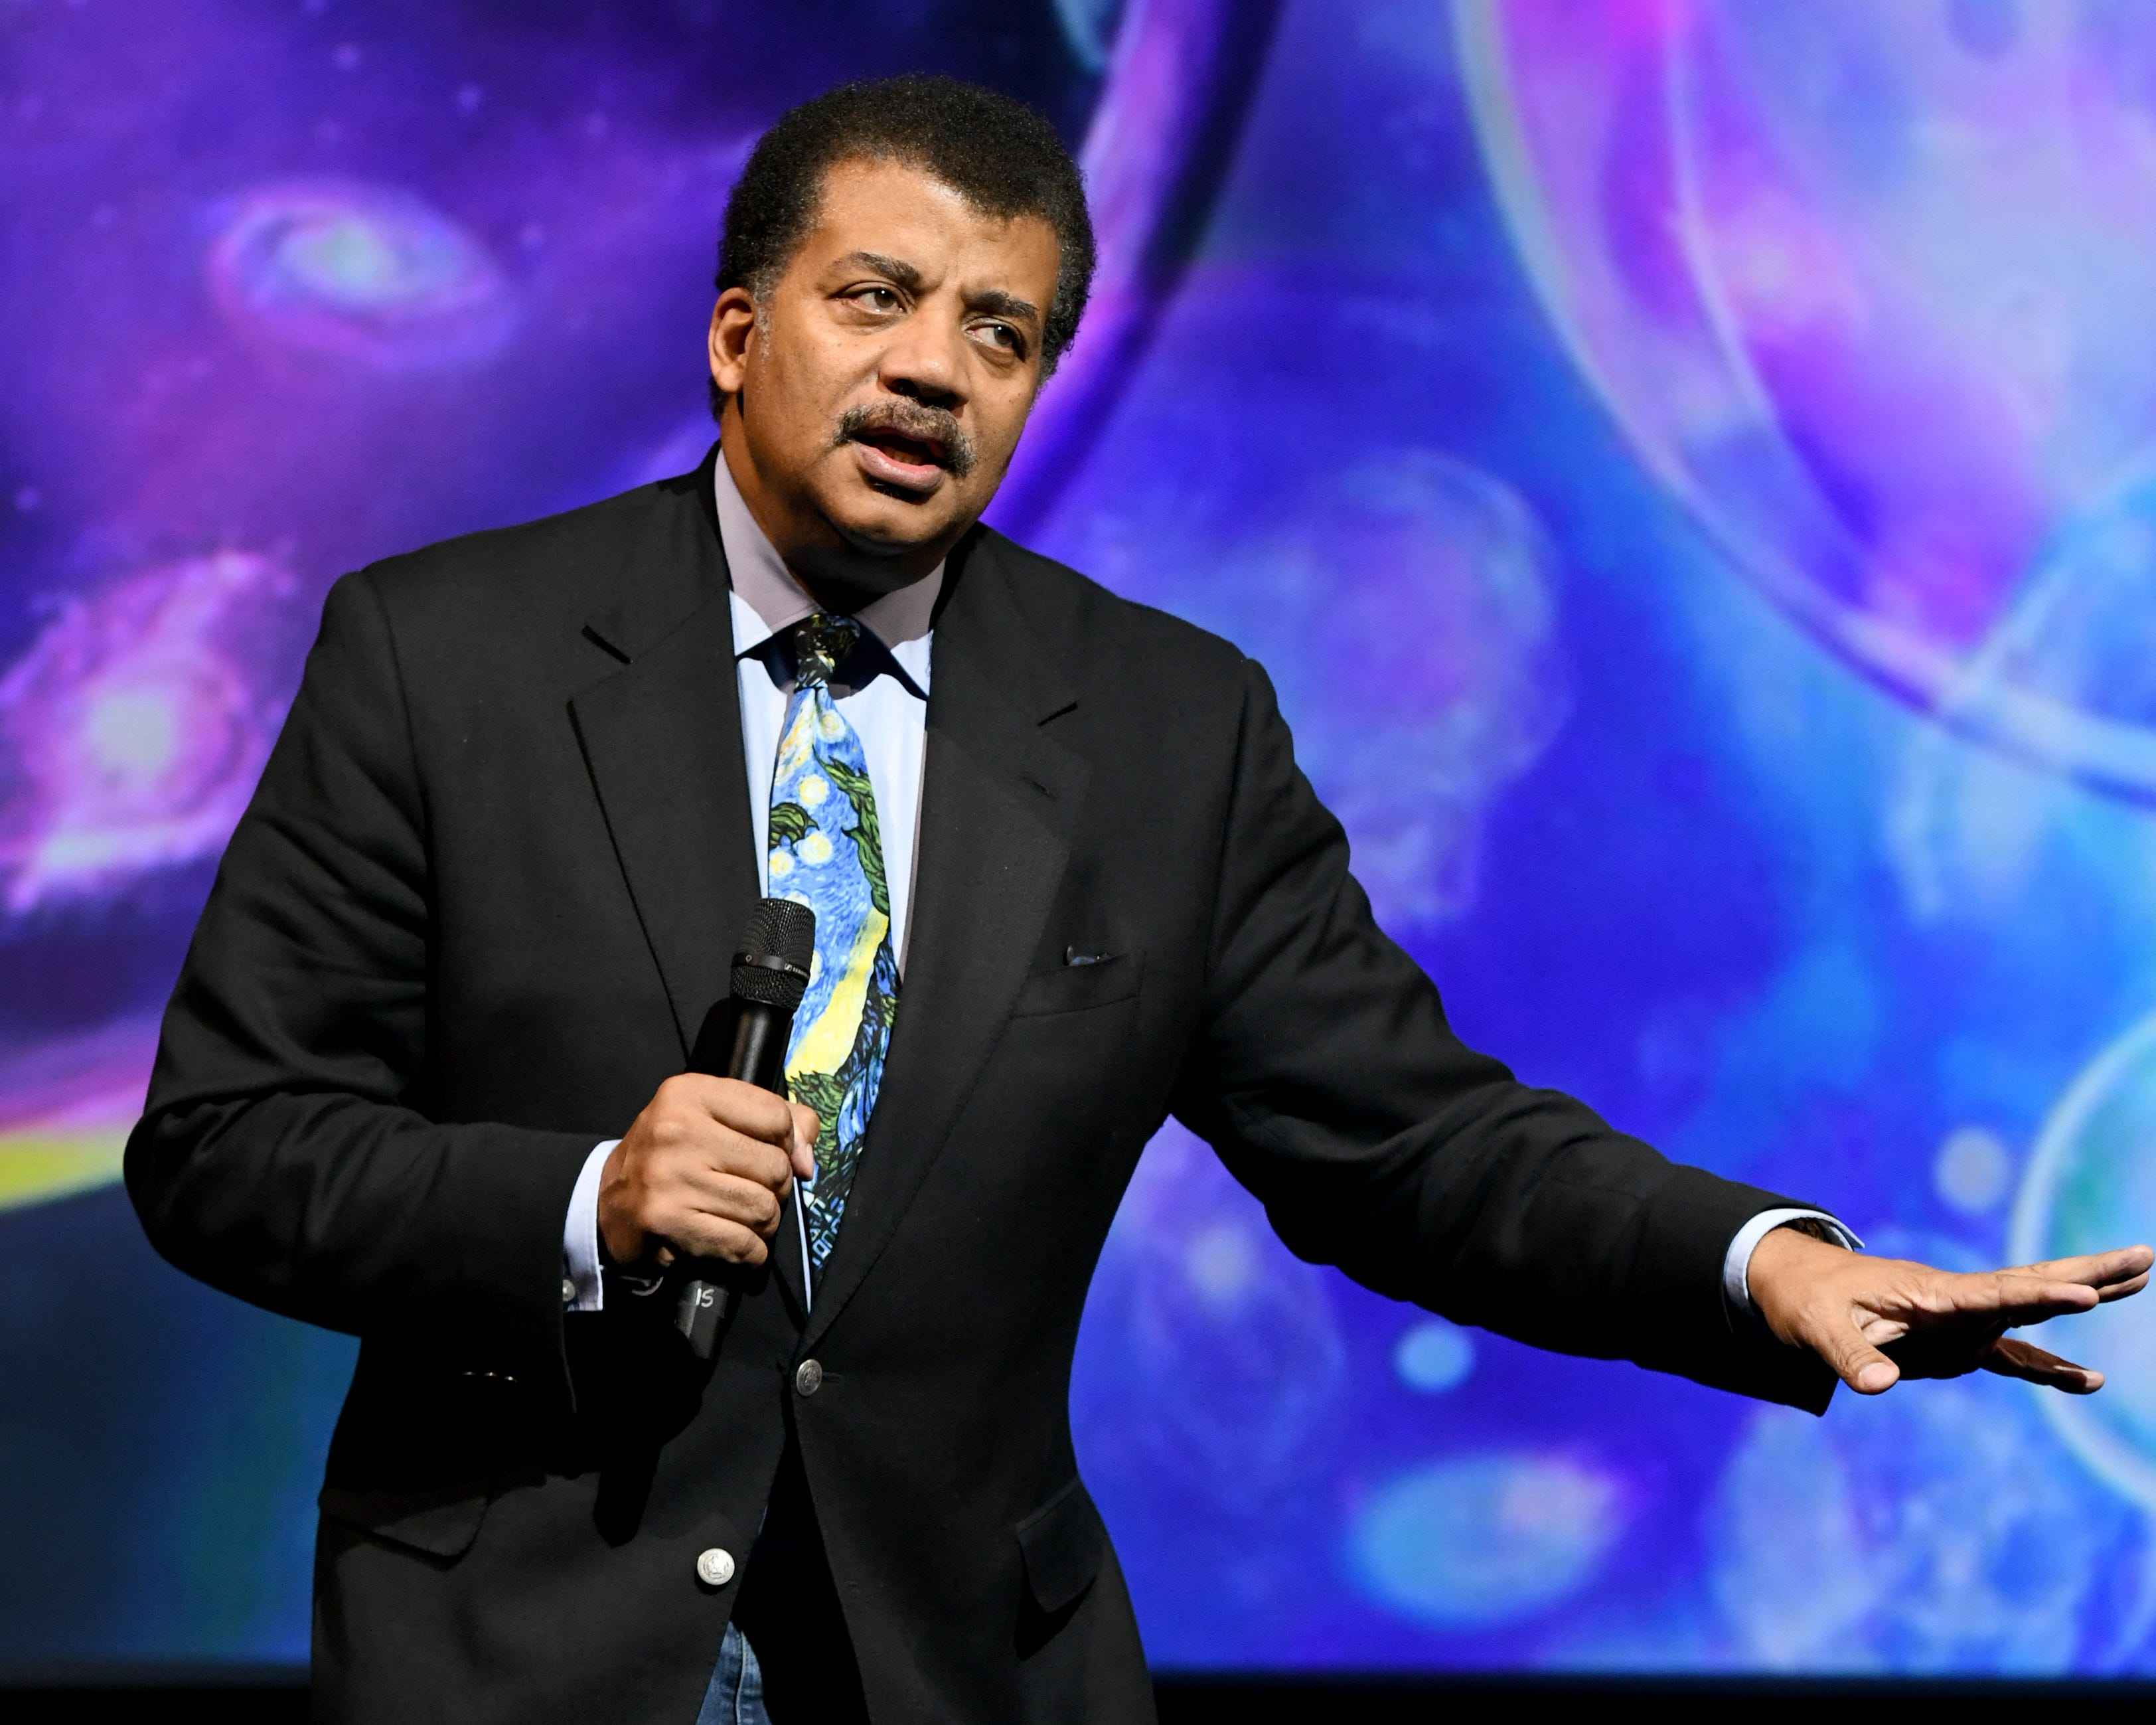 Neil deGrasse Tyson accused of sexual misconduct by fourth woman, report says